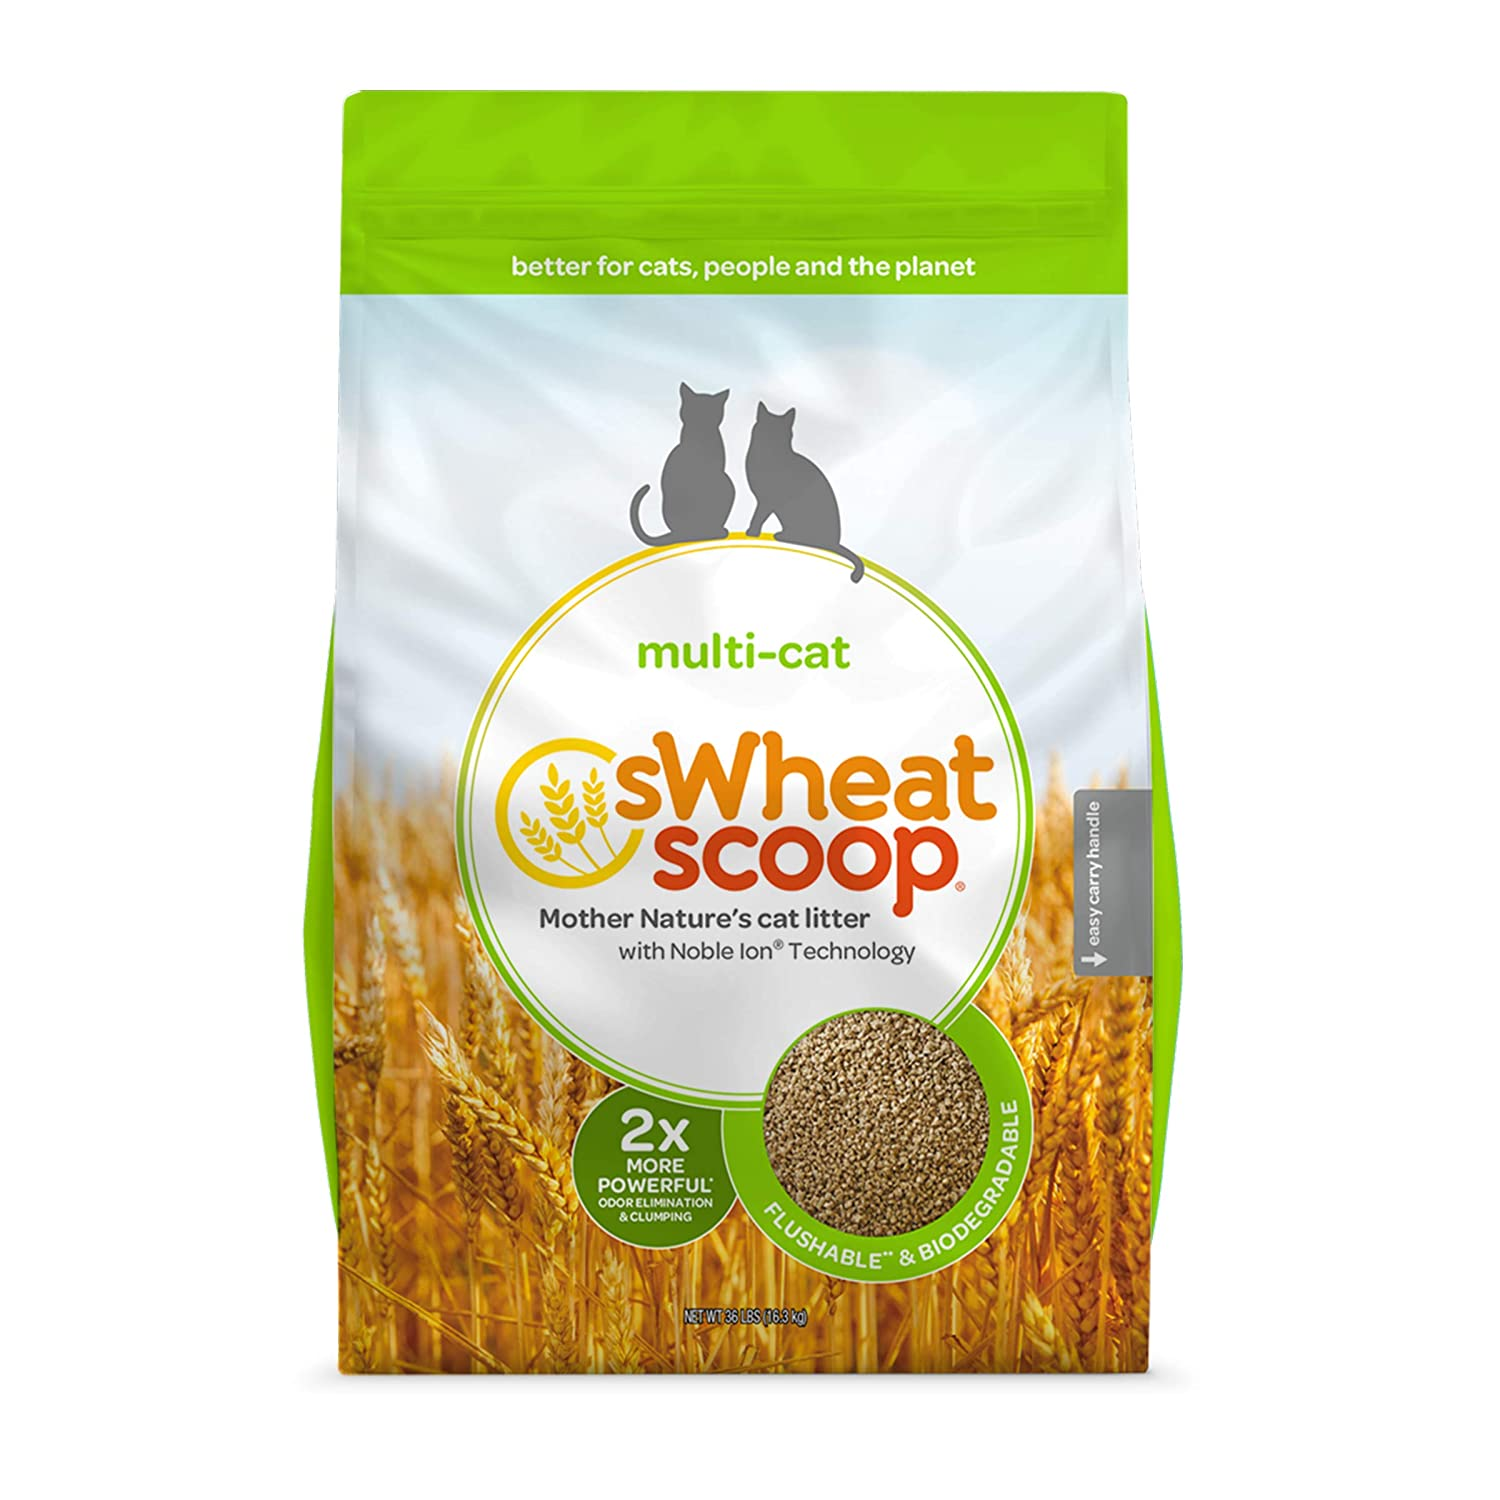 1.Swheat Scoop All-Natural Cat Litter